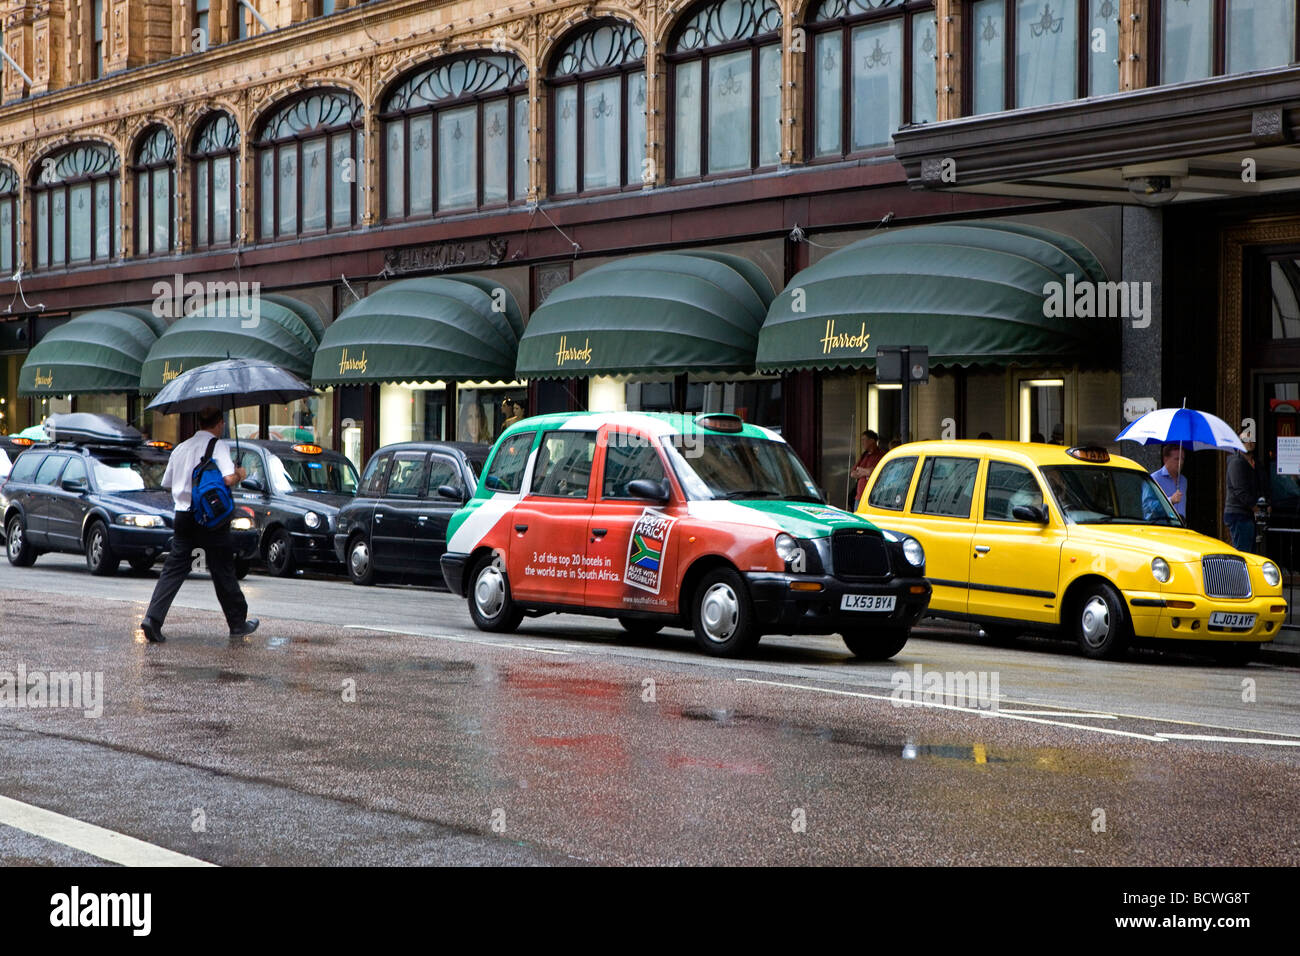 South African Taxi outside Harrods - Stock Image